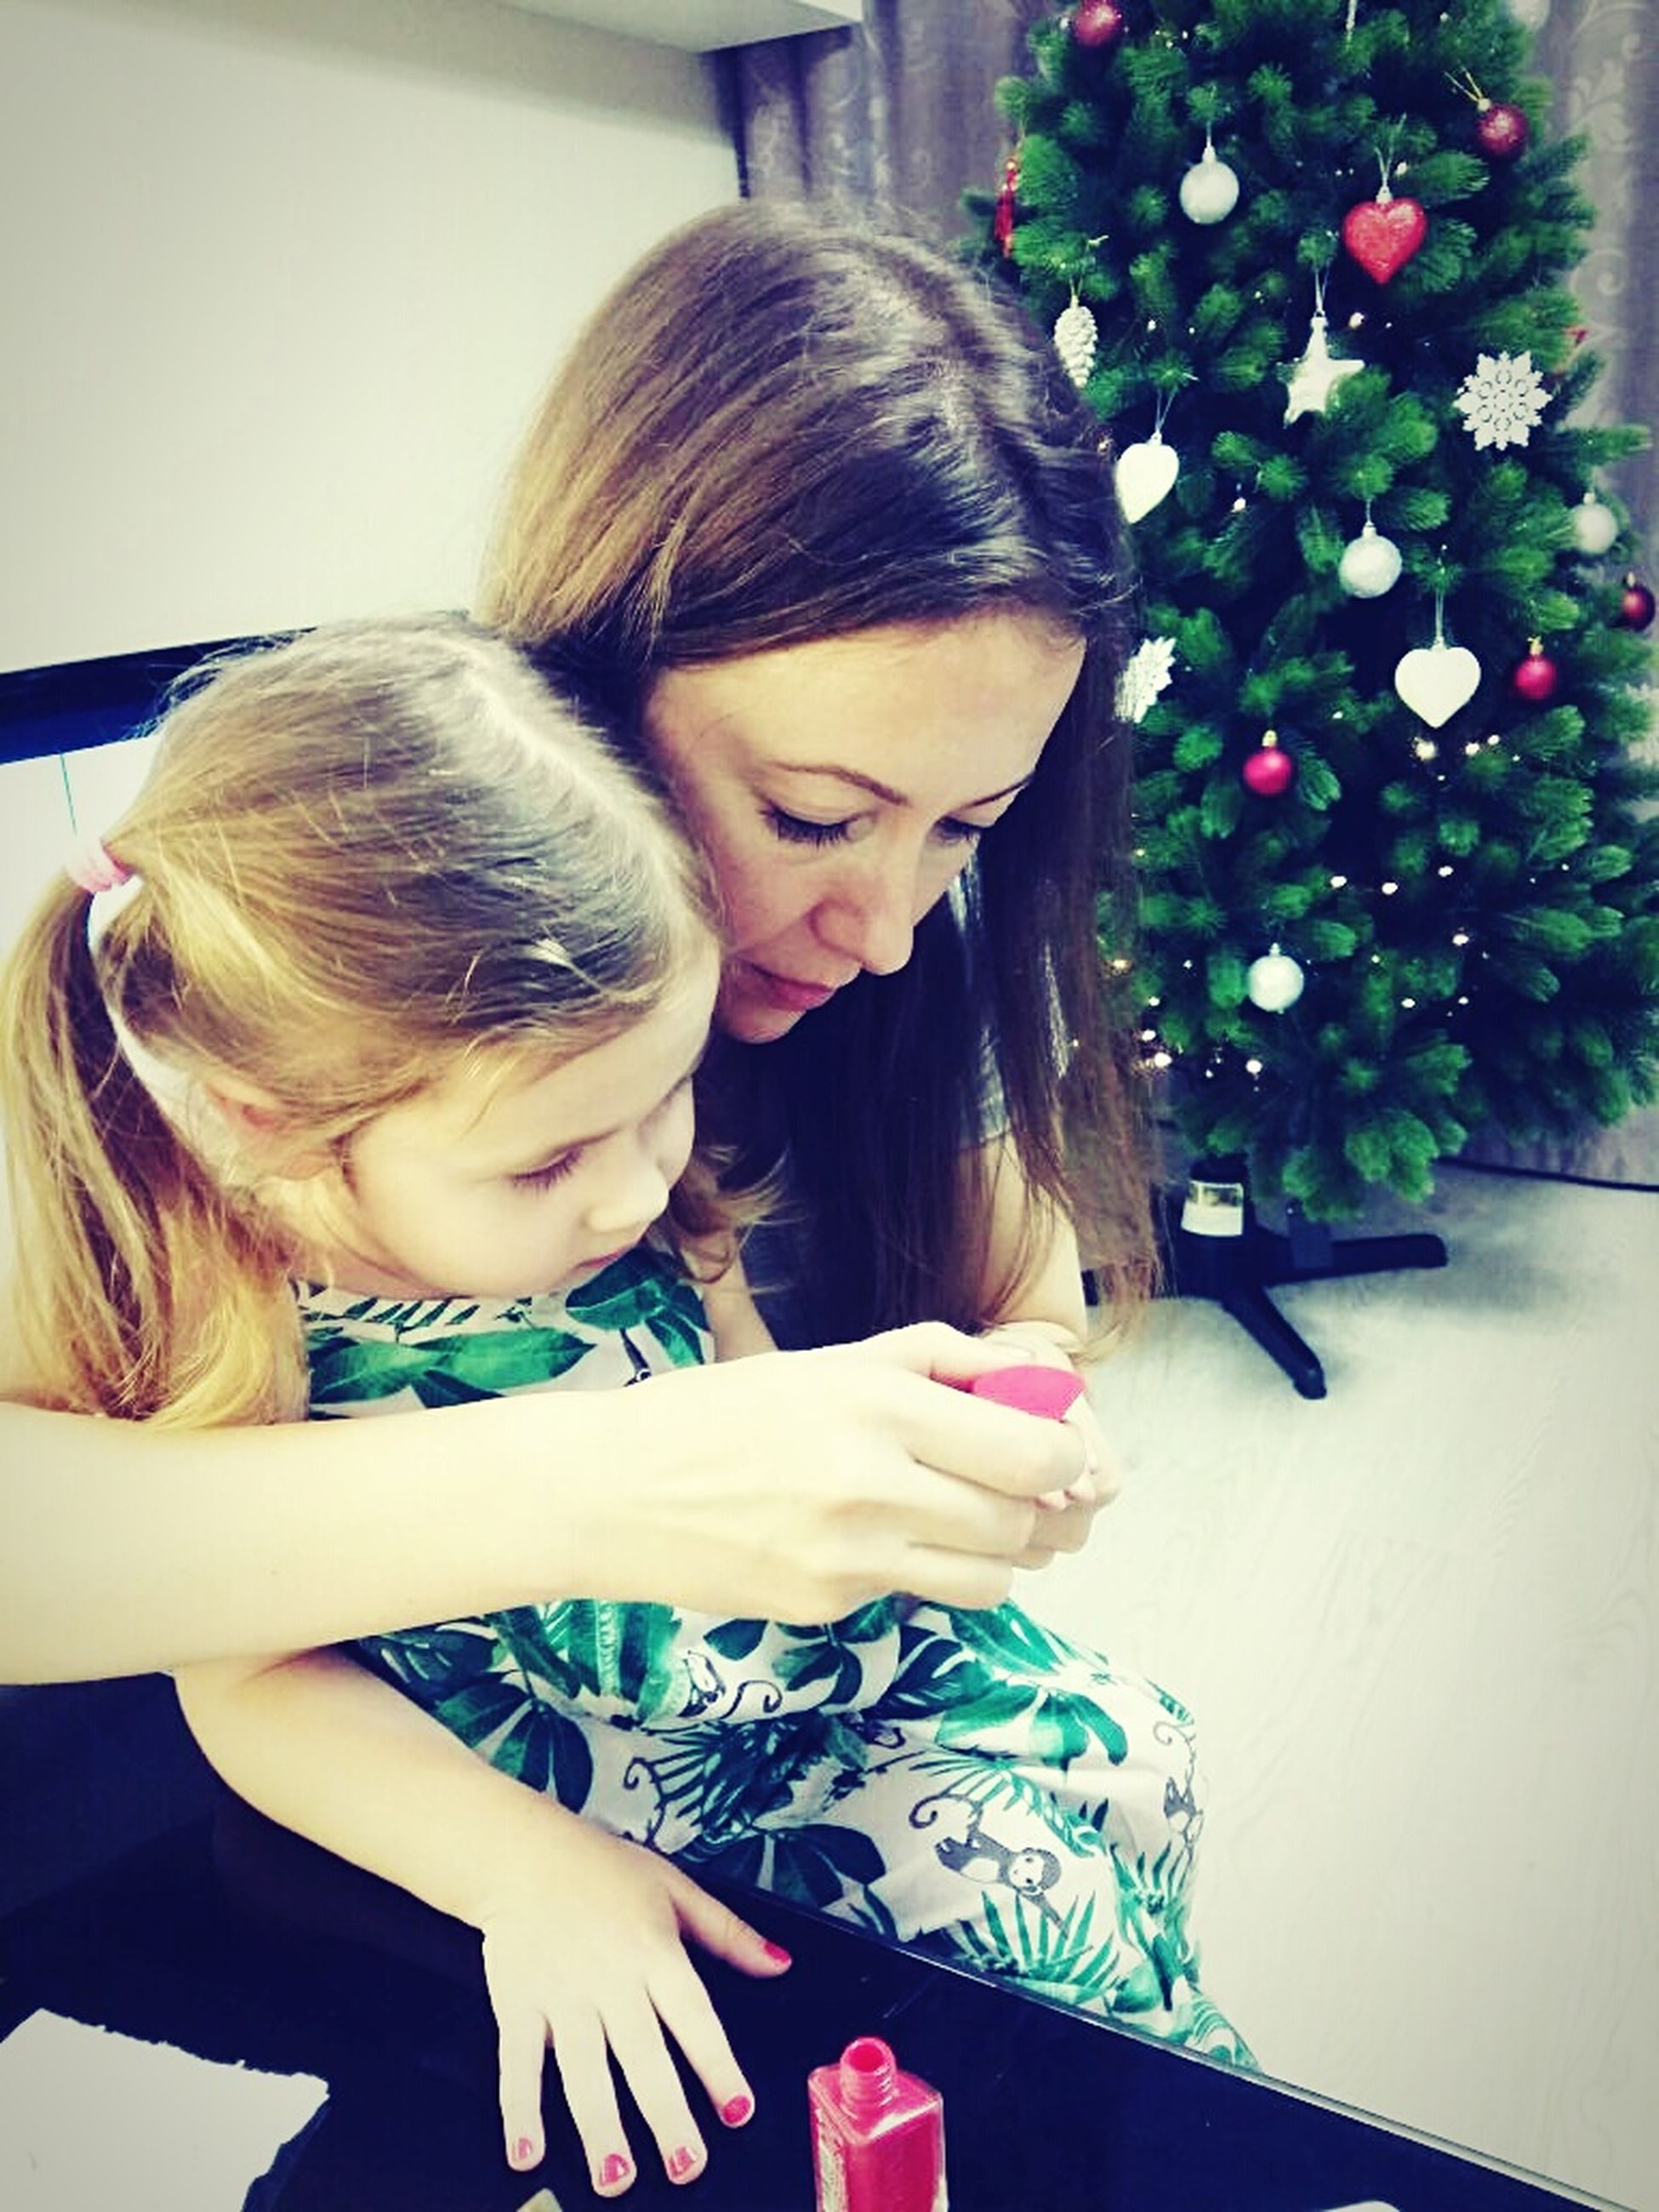 child, females, family, real people, family with one child, love, girls, lifestyles, tree, embracing, childhood, christmas, parent, home interior, happiness, christmas tree, indoors, adult, cheerful, smiling, holiday - event, women, people, togetherness, domestic room, christmas ornament, christmas decoration, domestic life, young adult